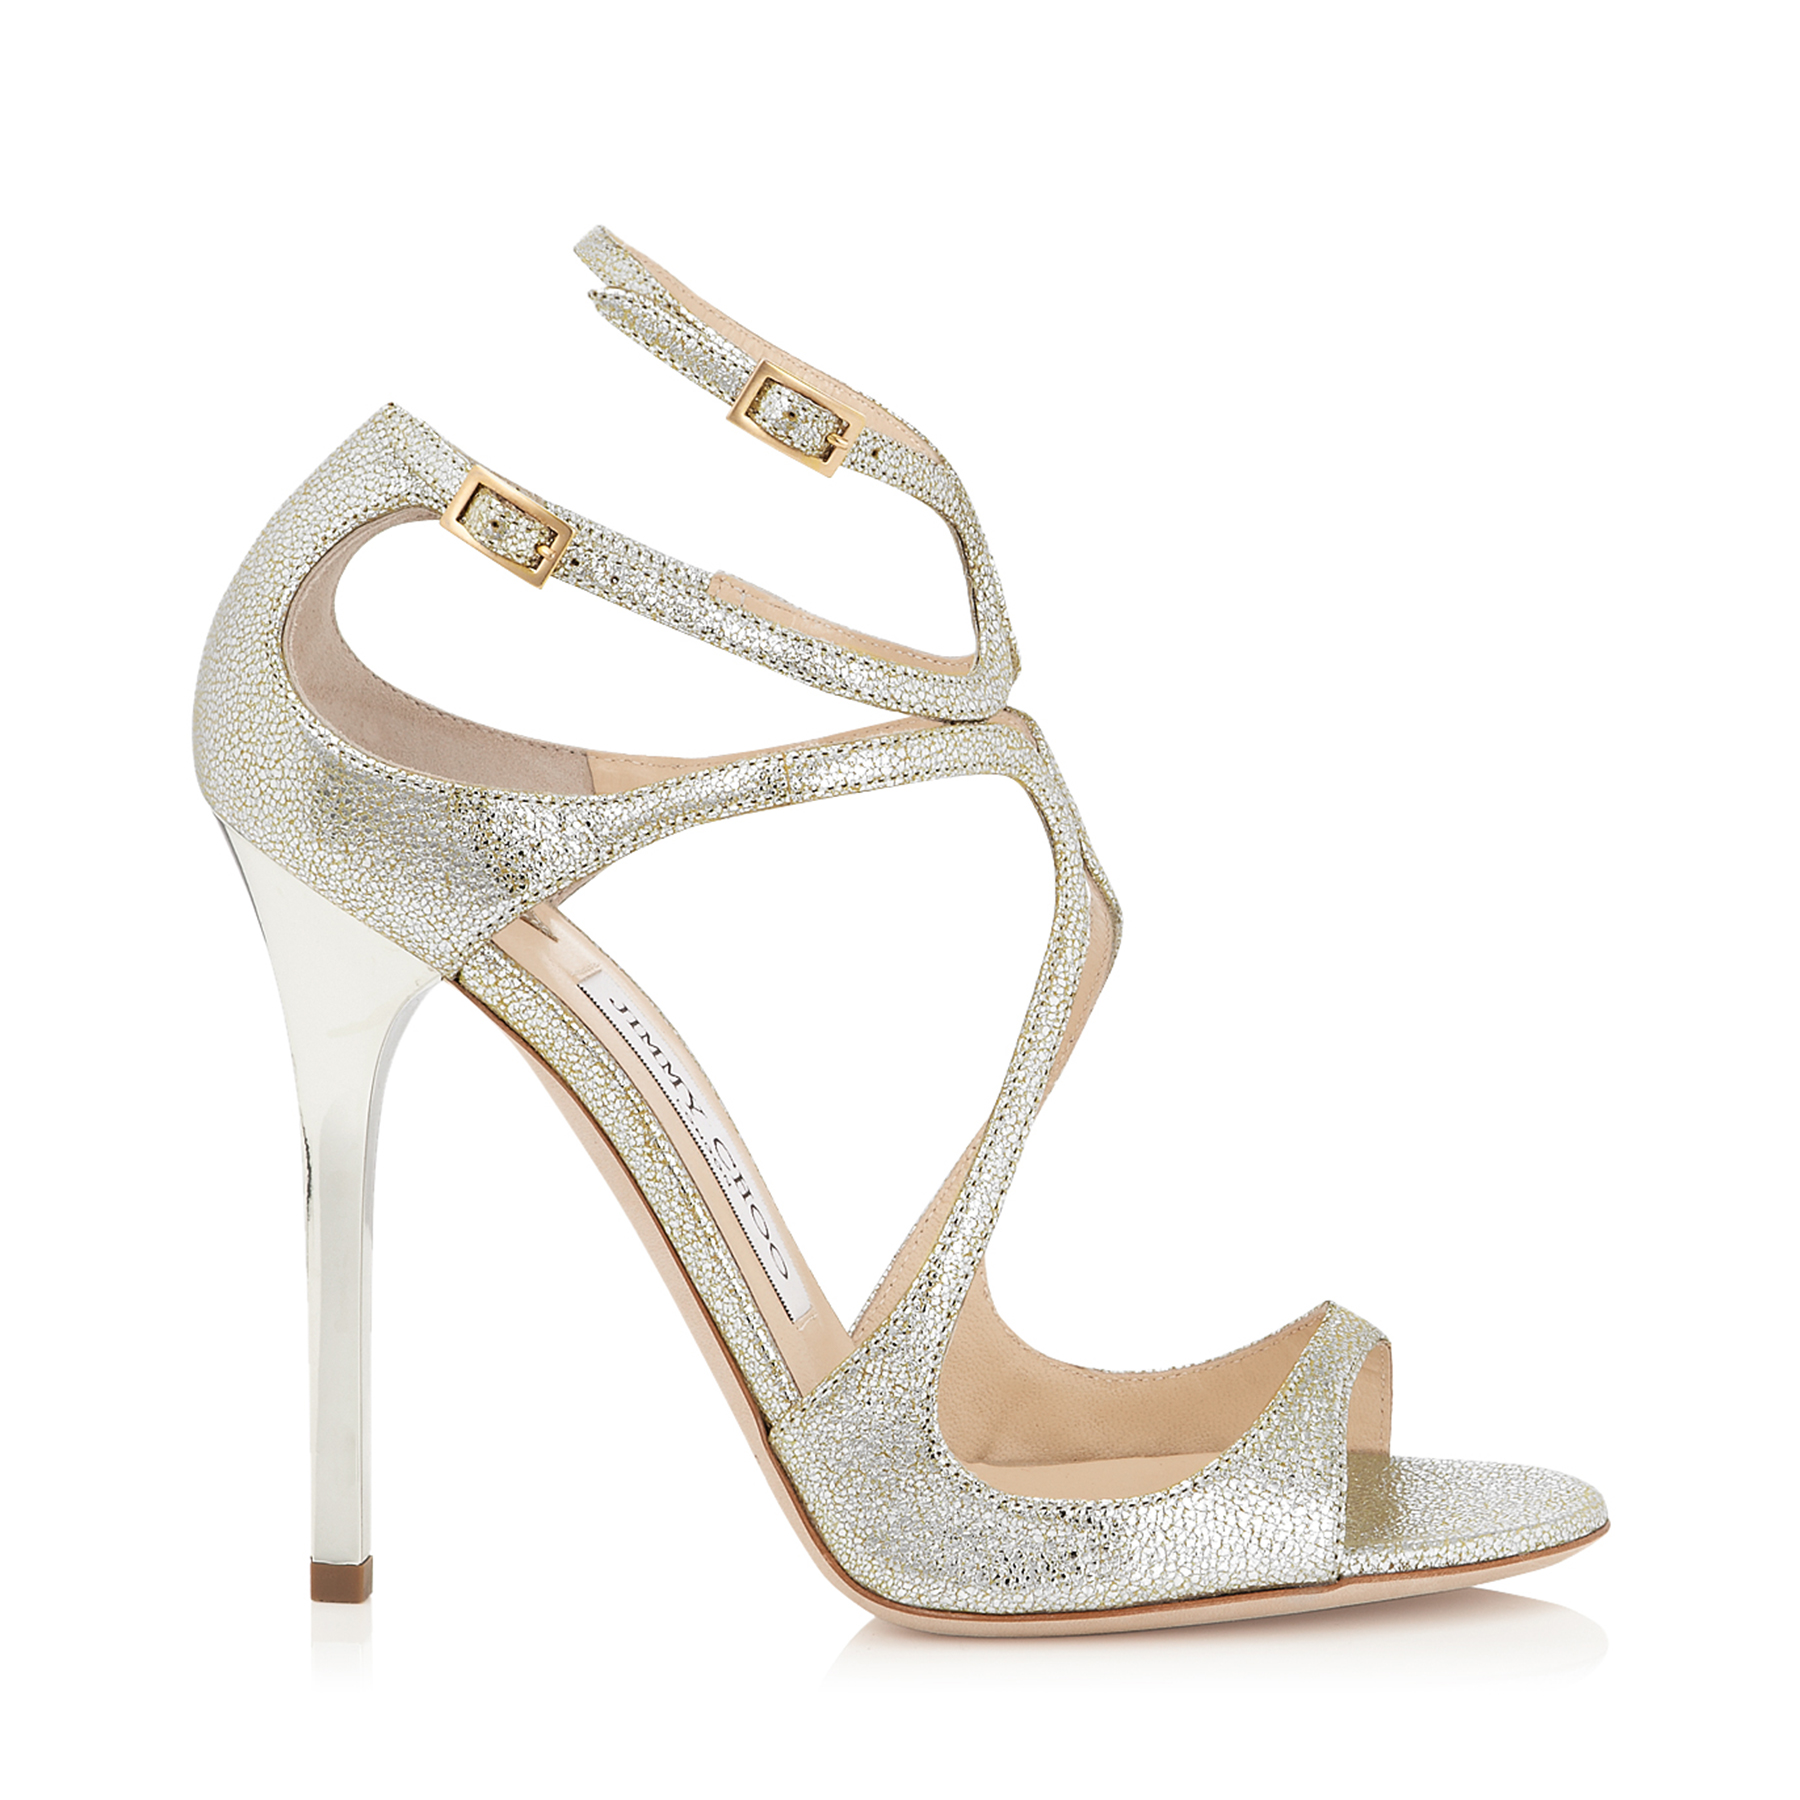 LANCE Champagne Glitter Leather Sandals by Jimmy Choo